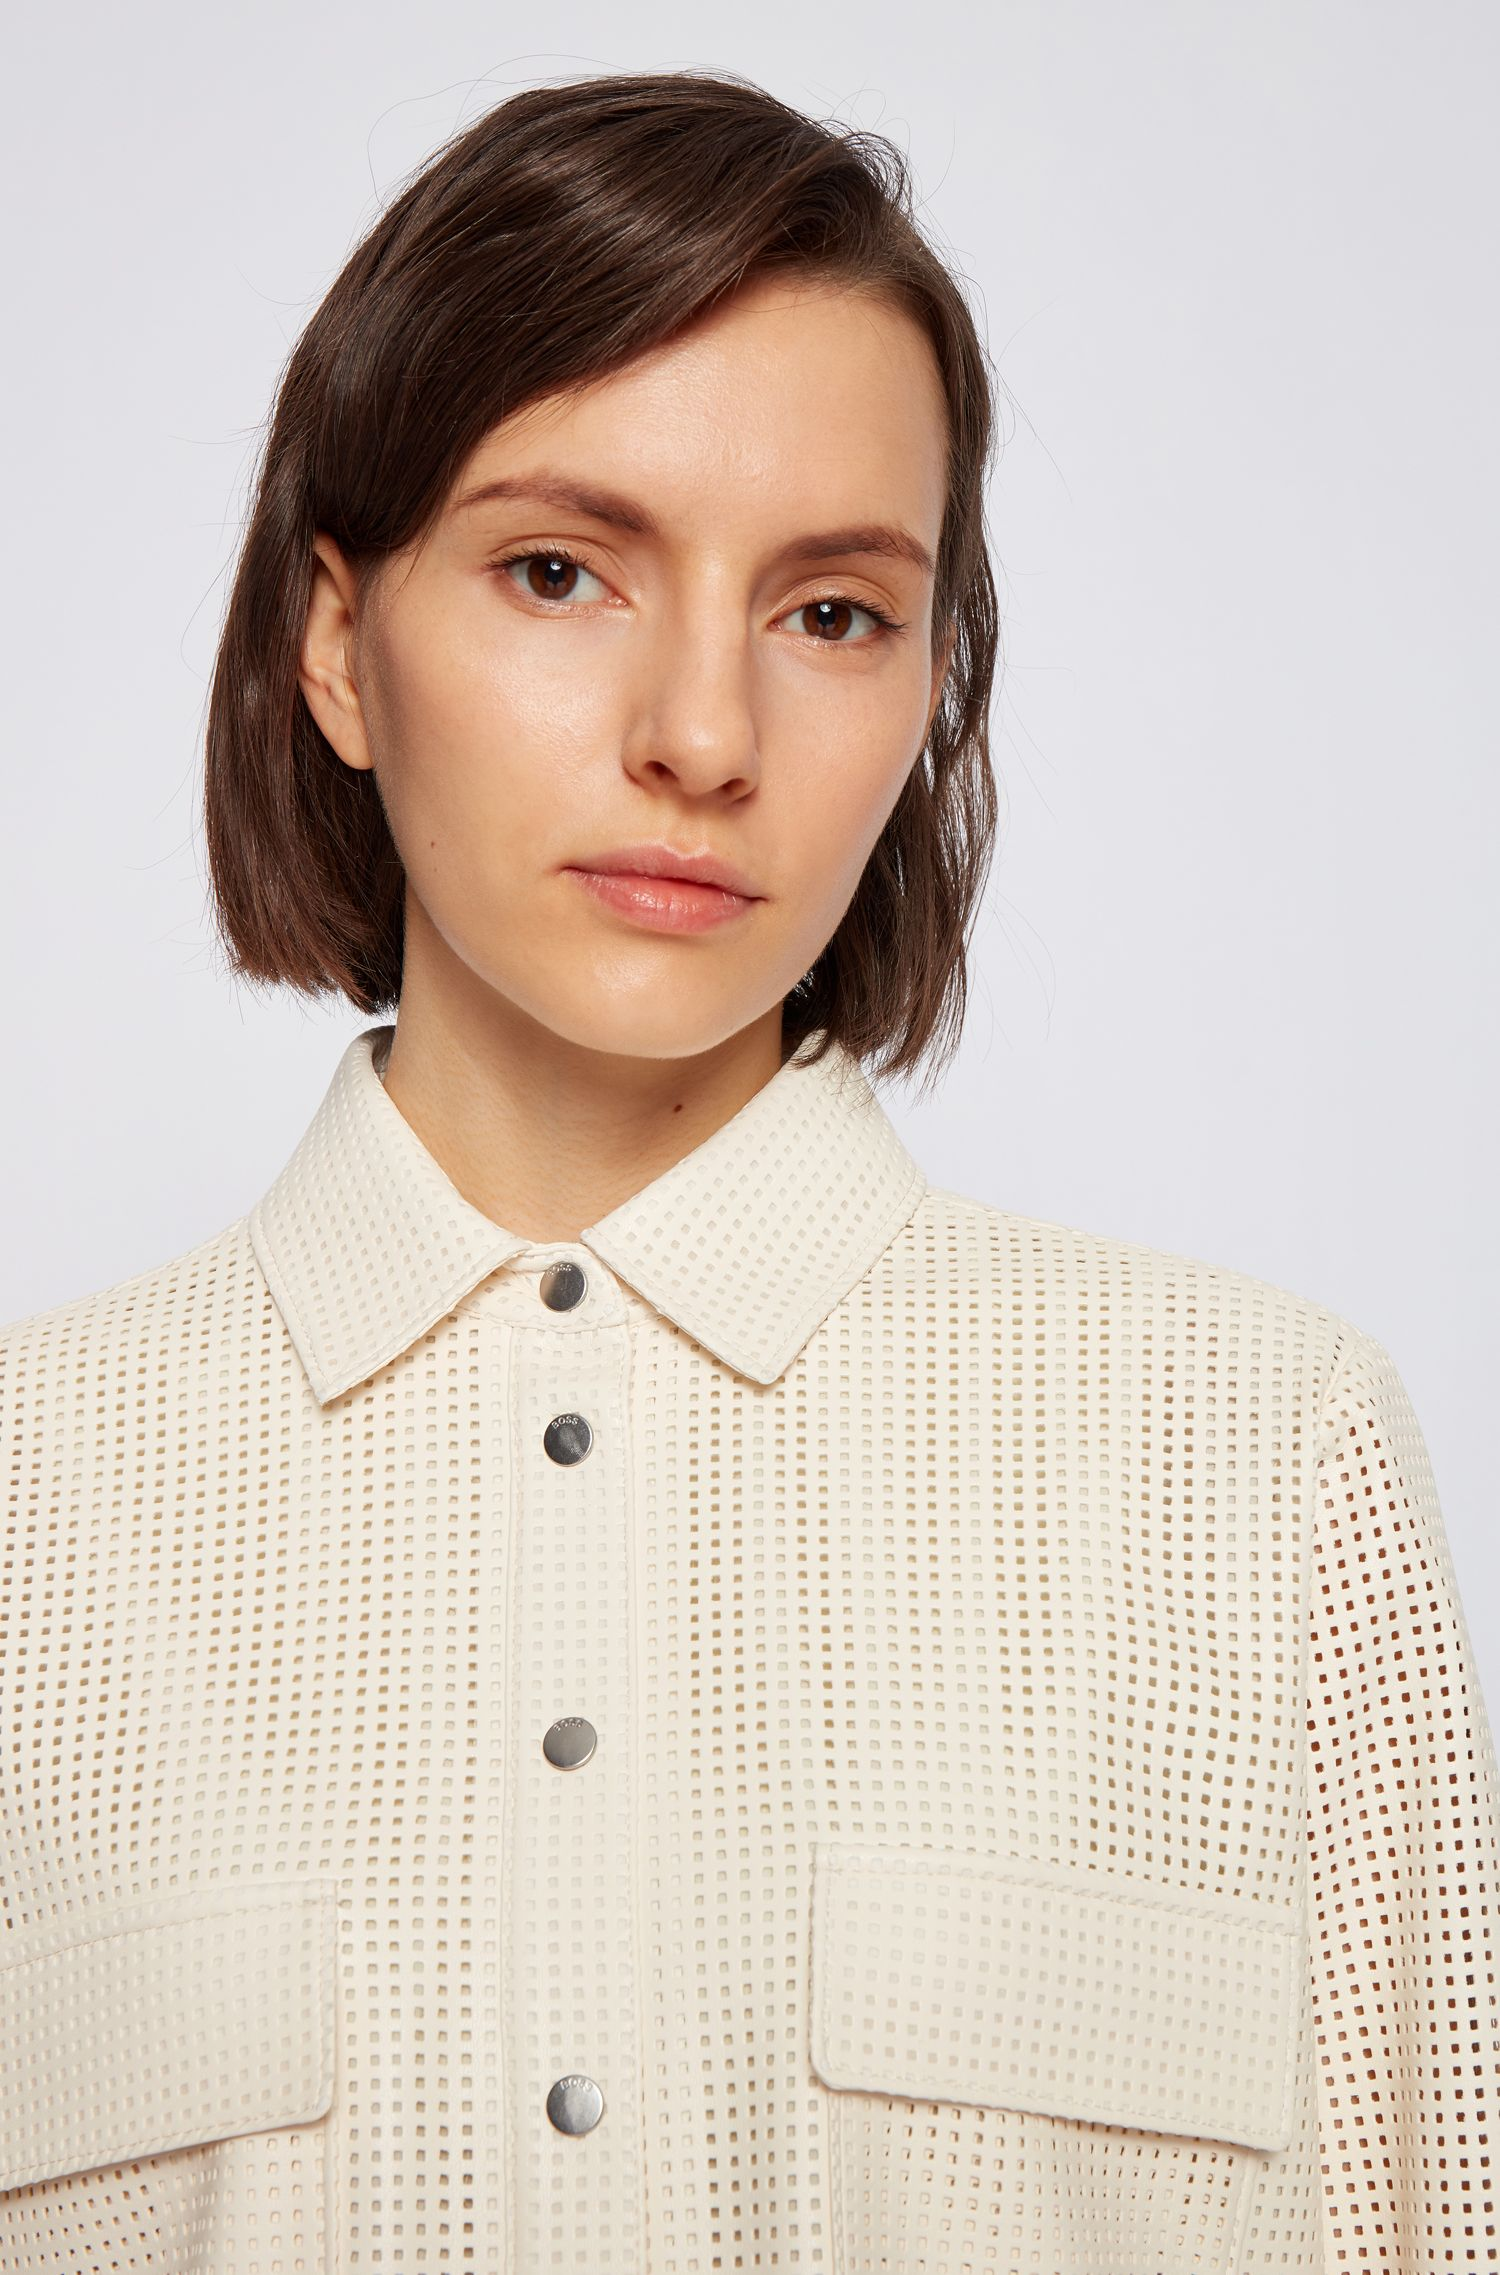 Perforated faux leather blouse with press studs BOSS | Blouses | 50450605118